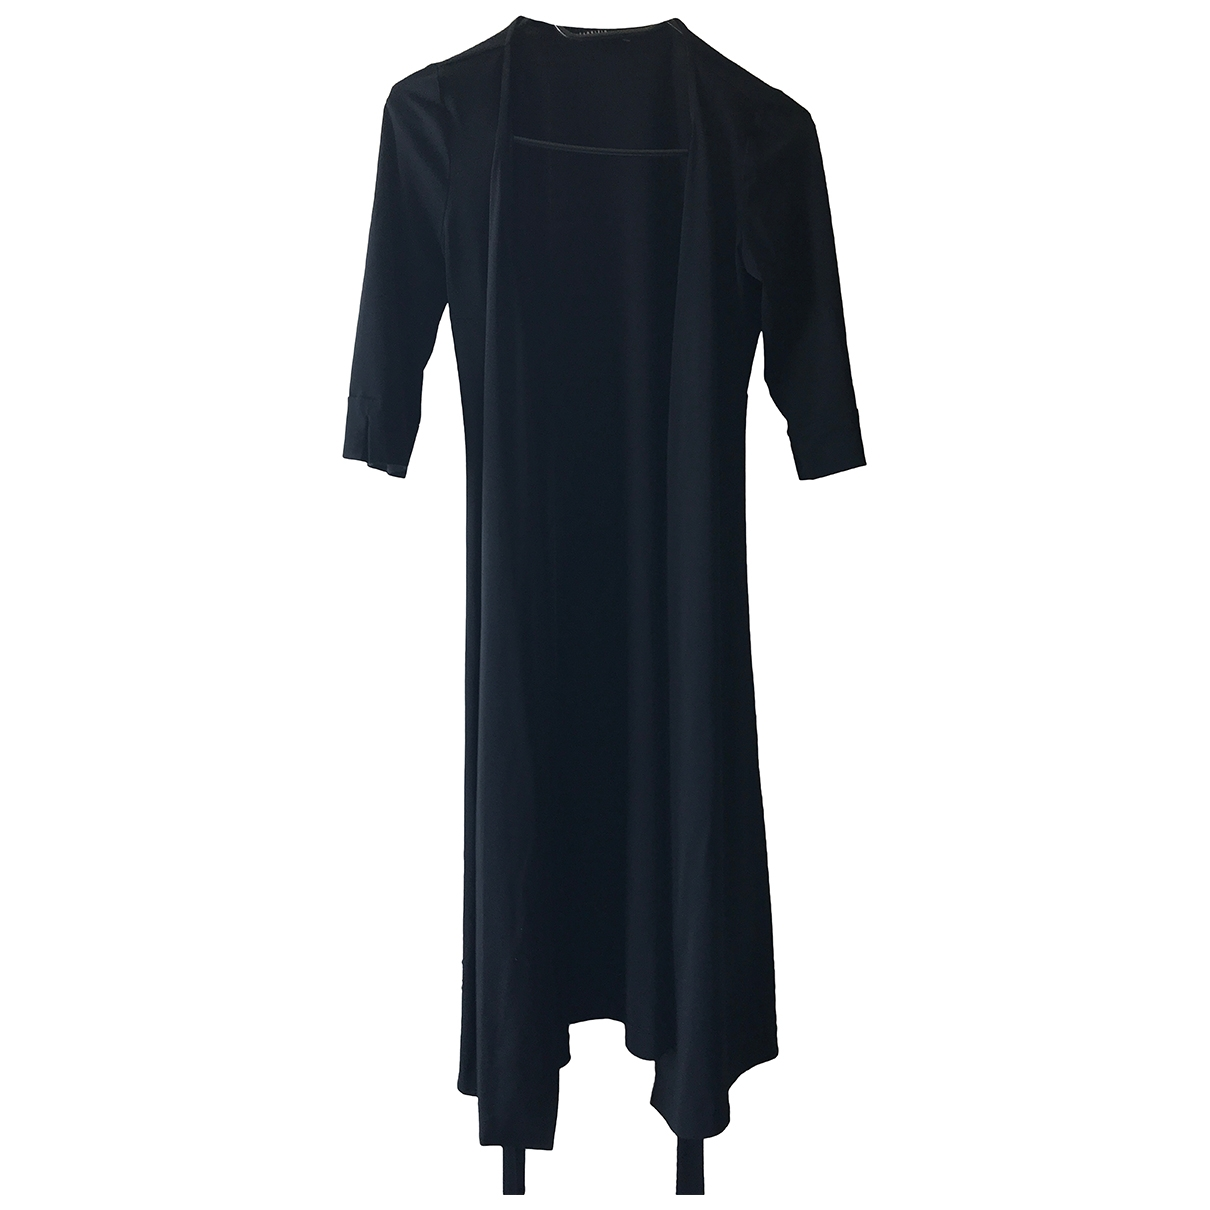 Non Signé / Unsigned \N Black dress for Women 40 IT